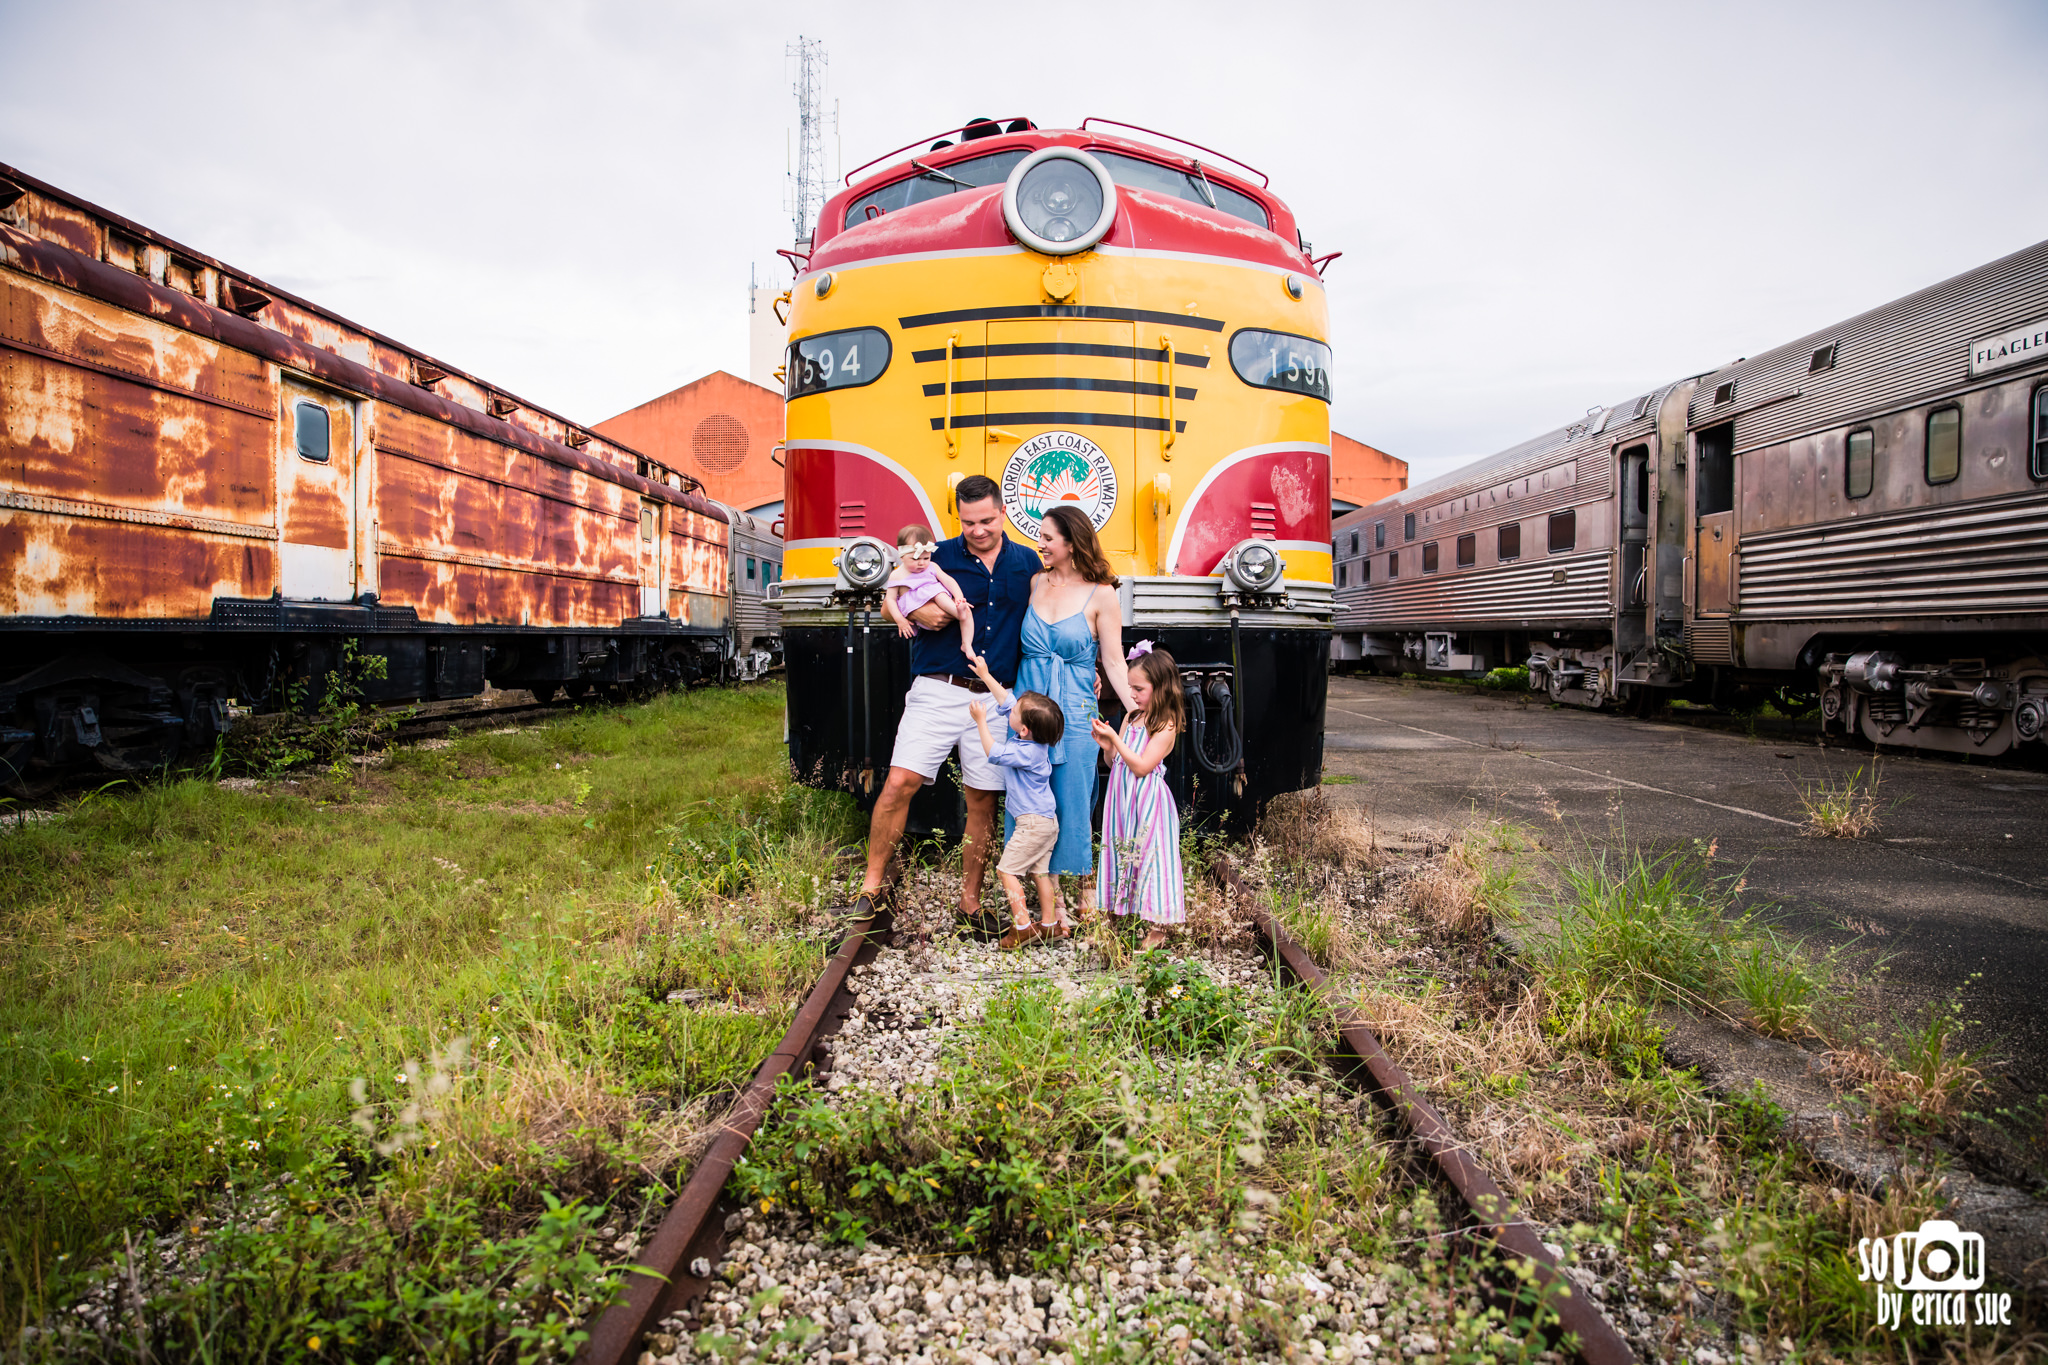 so-you-by-erica-sue-gold-coast-railroad-museum-miami-family-photo-shoot-session-7475.JPG